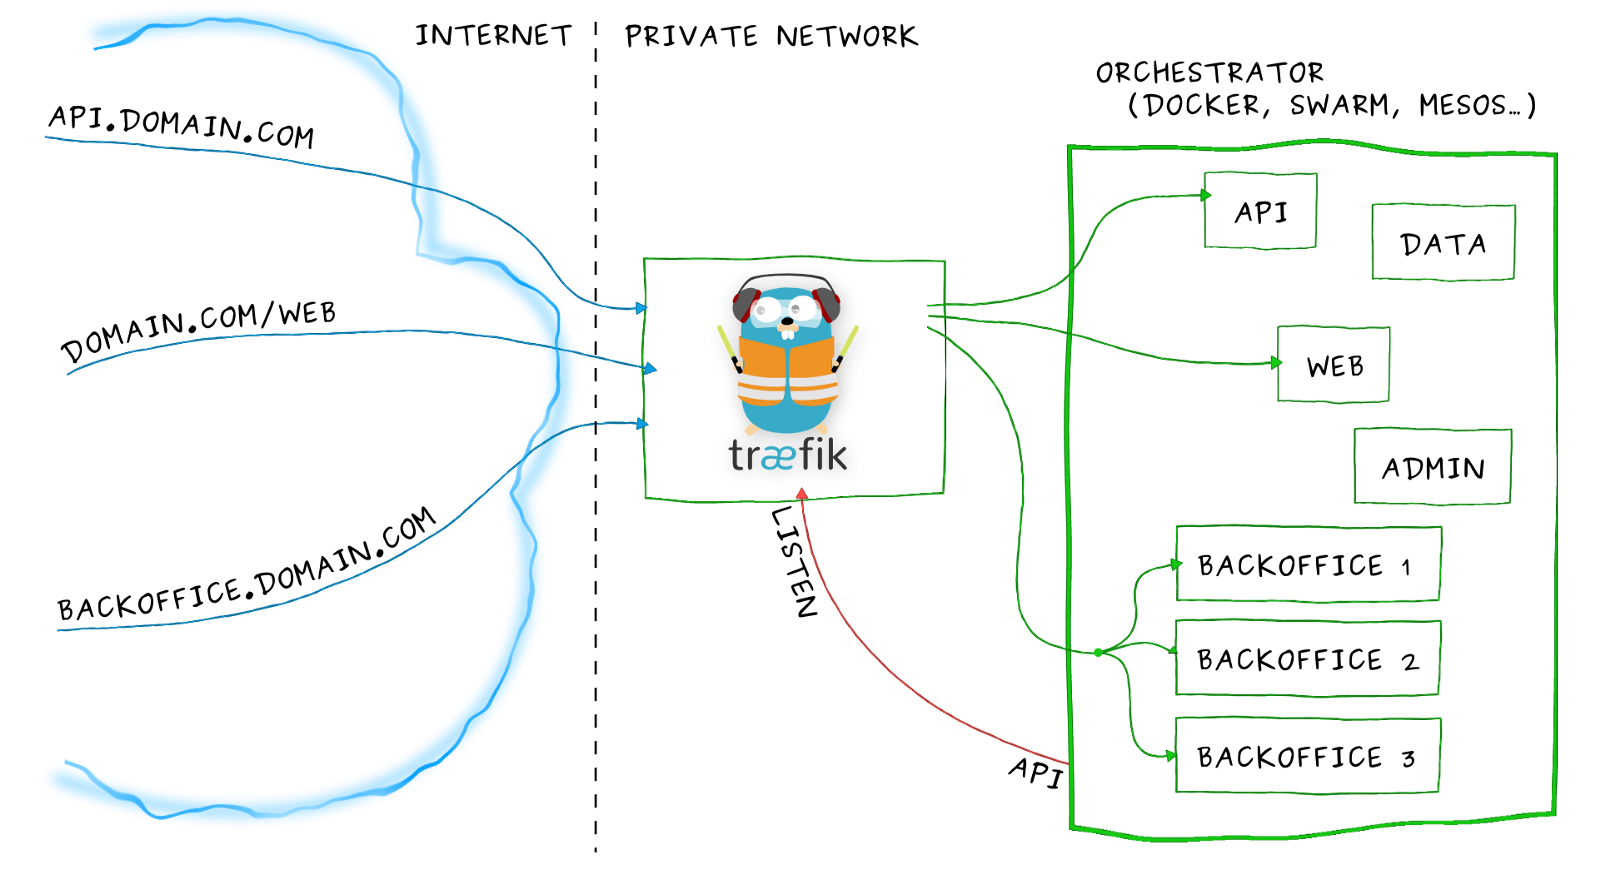 Building An Arm Kubernetes Cluster Itnext Auto Ingress Wiring Diagram With Traefik Any Application Deployment Can Be Exposed Its Services On A Subdomain The Network Was Deployed Itself Loadbalancer